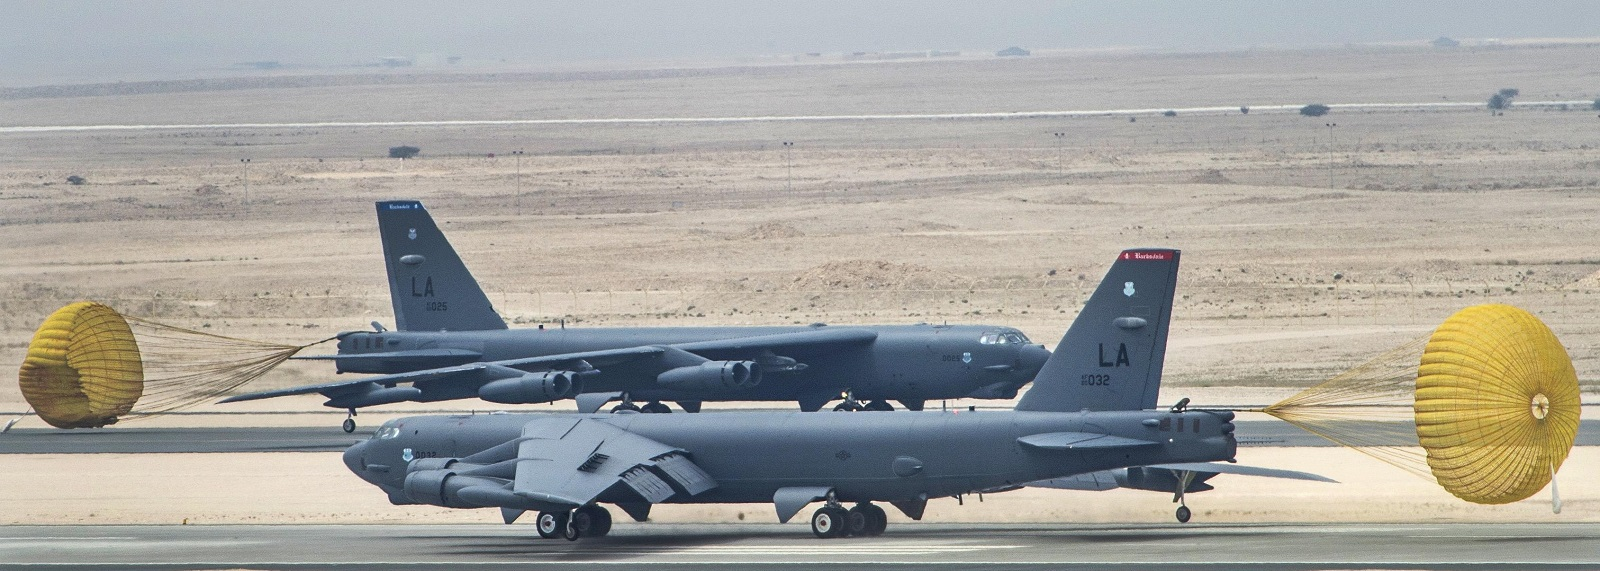 US Air Force B-52 Stratofortress aircraft at al-Udeid Air Base in Qatar last year. (Photo: US Dept of Defense)